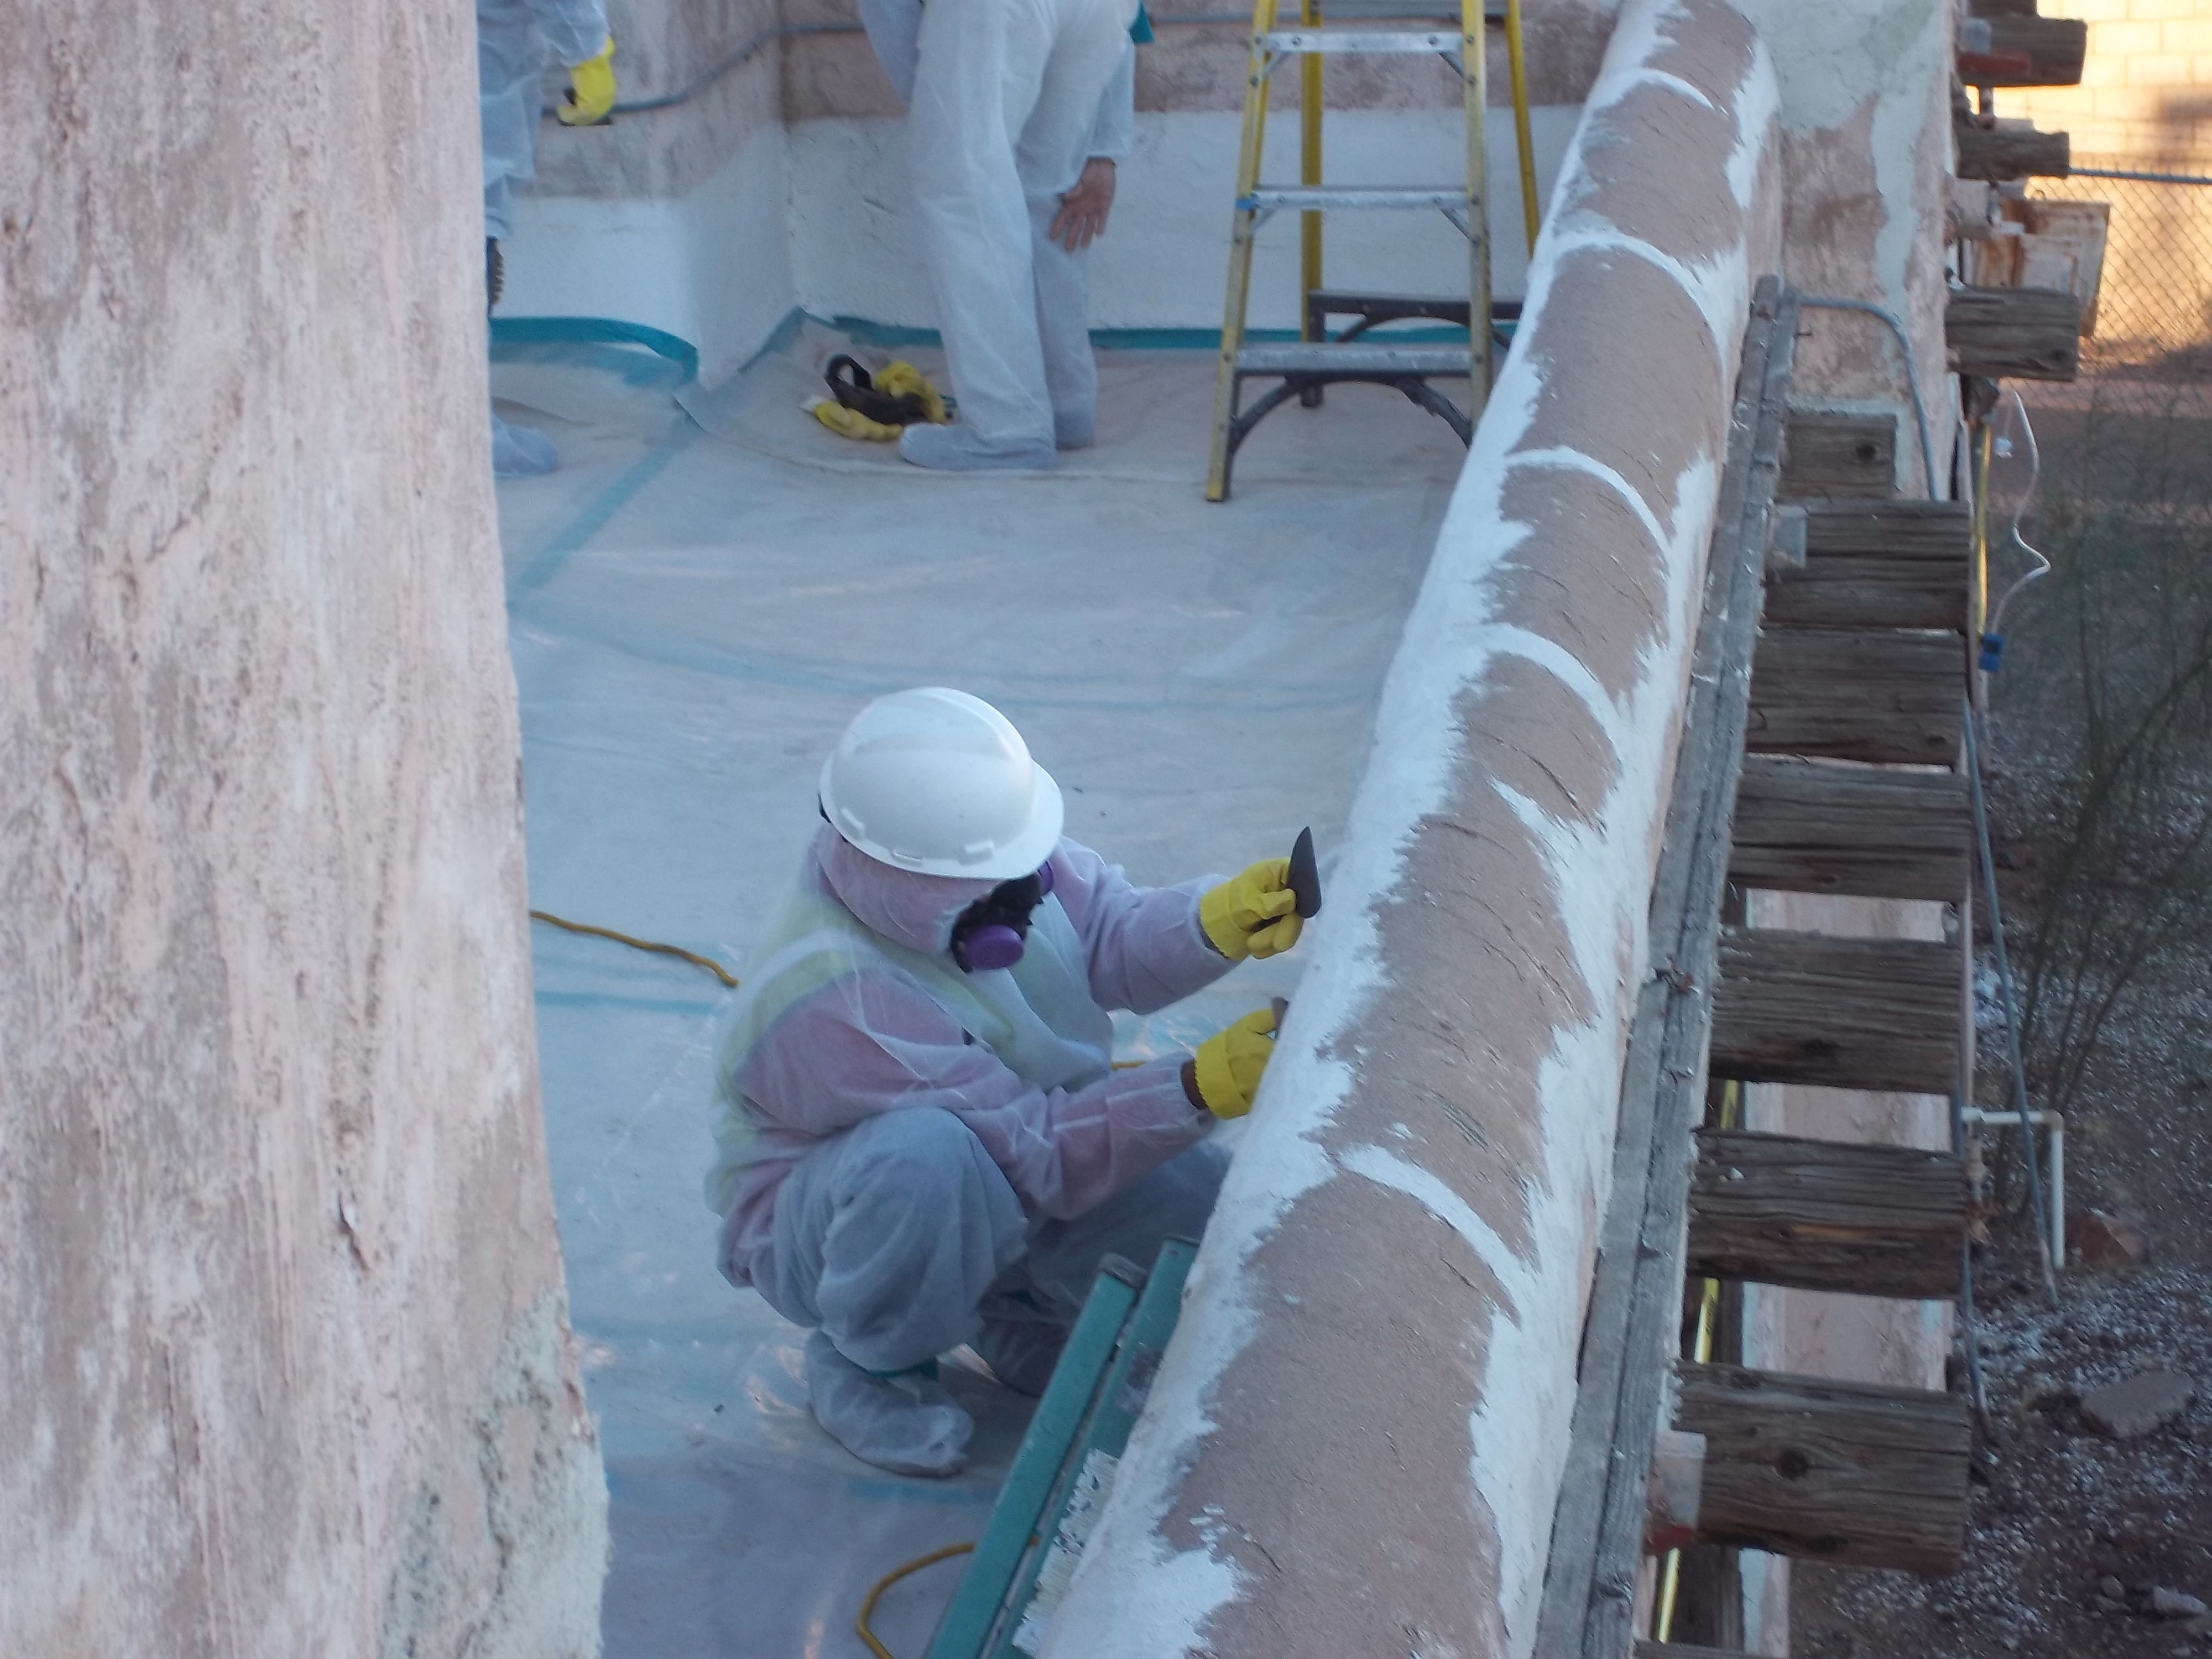 Lead Containing Paint Removal Project Management - Hutzel & Associates, Inc.